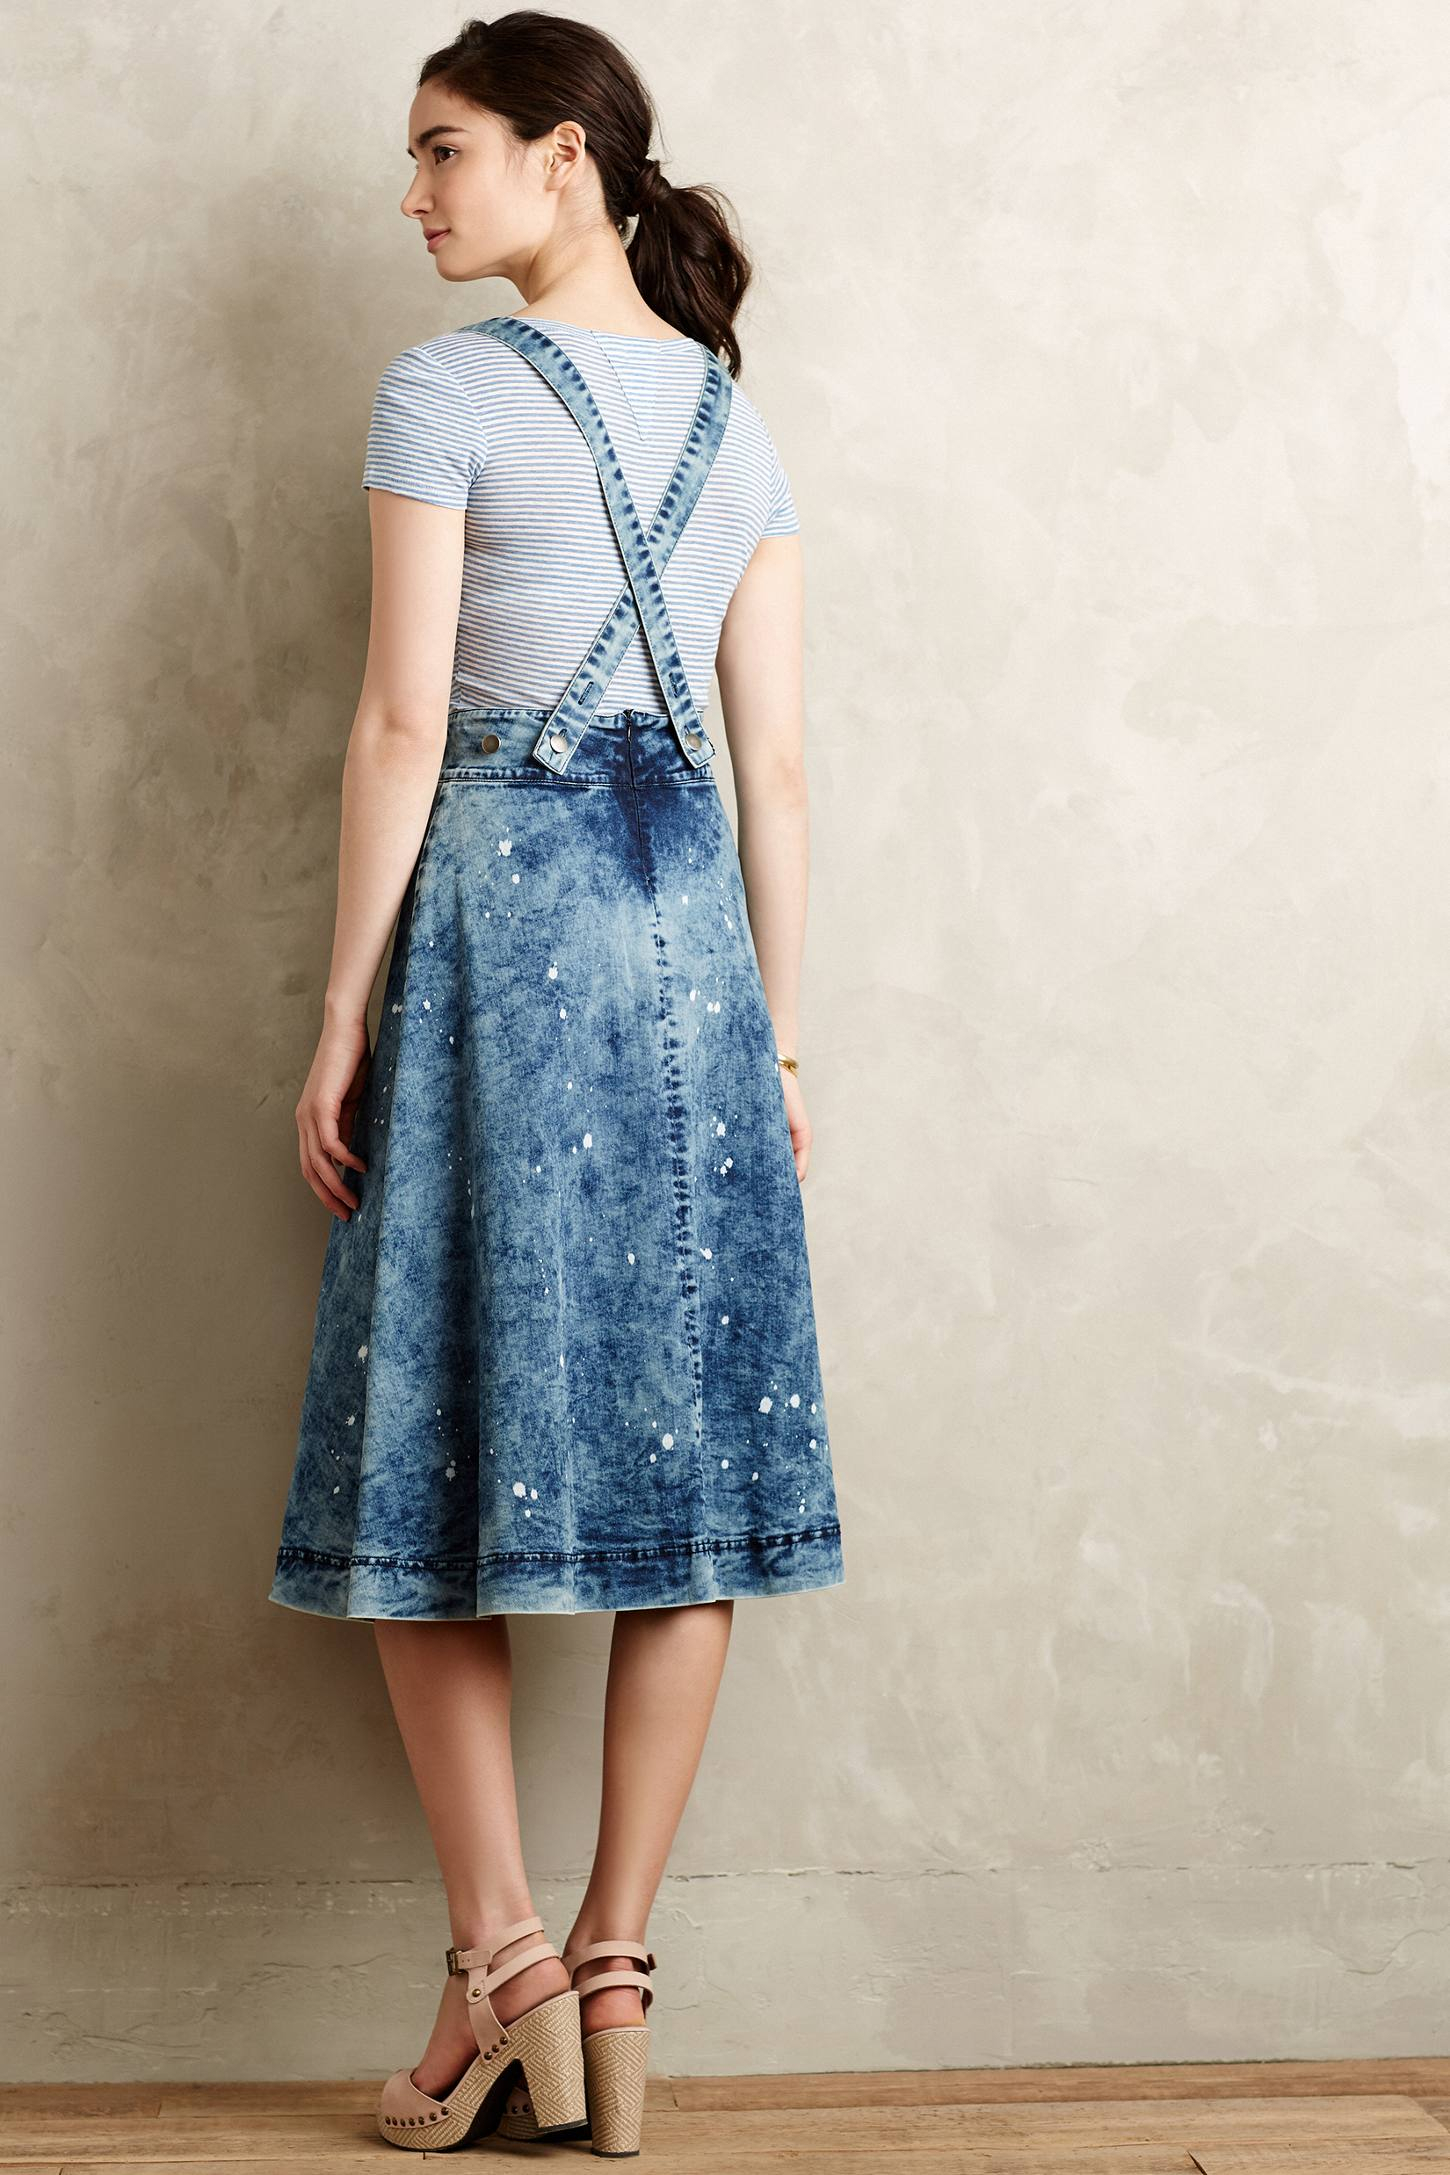 Denim Overall Skirt - Skirts